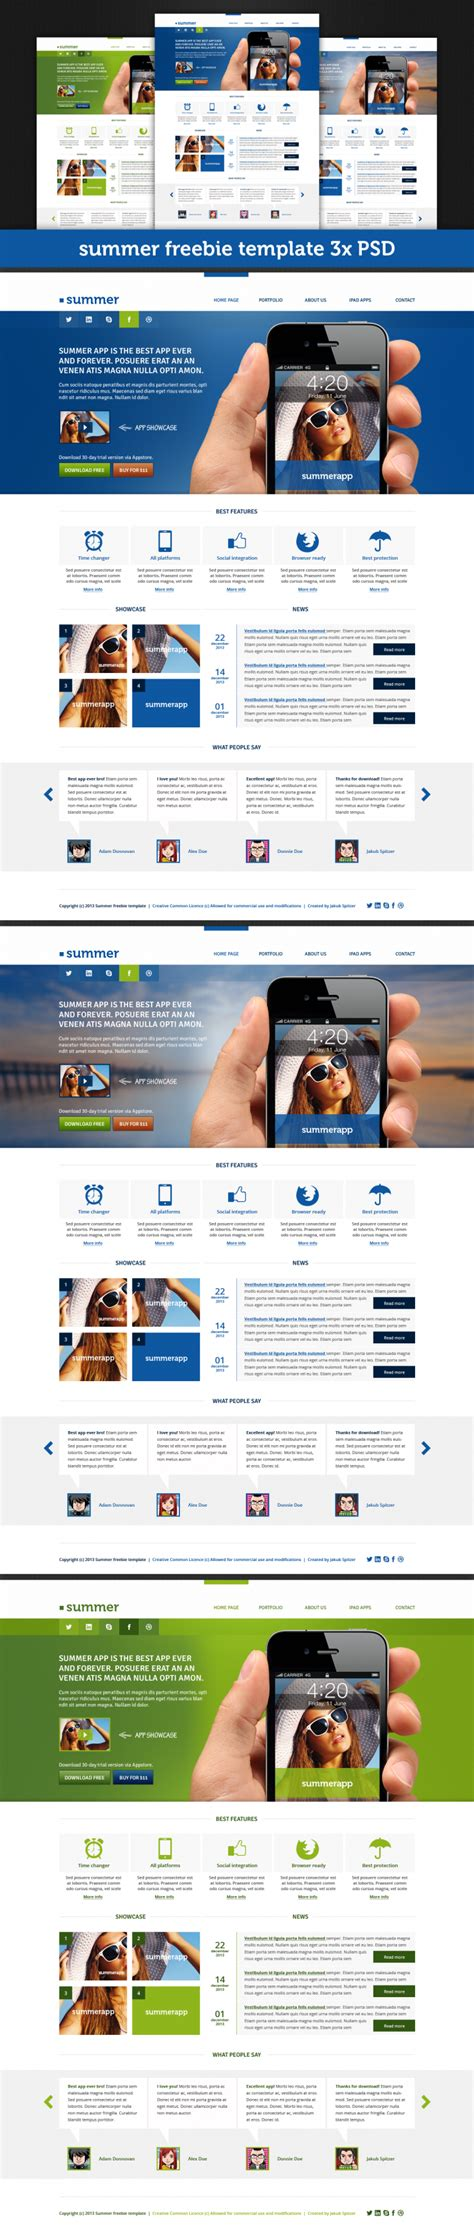 free download web layout psd format summer template free psd file download download psd